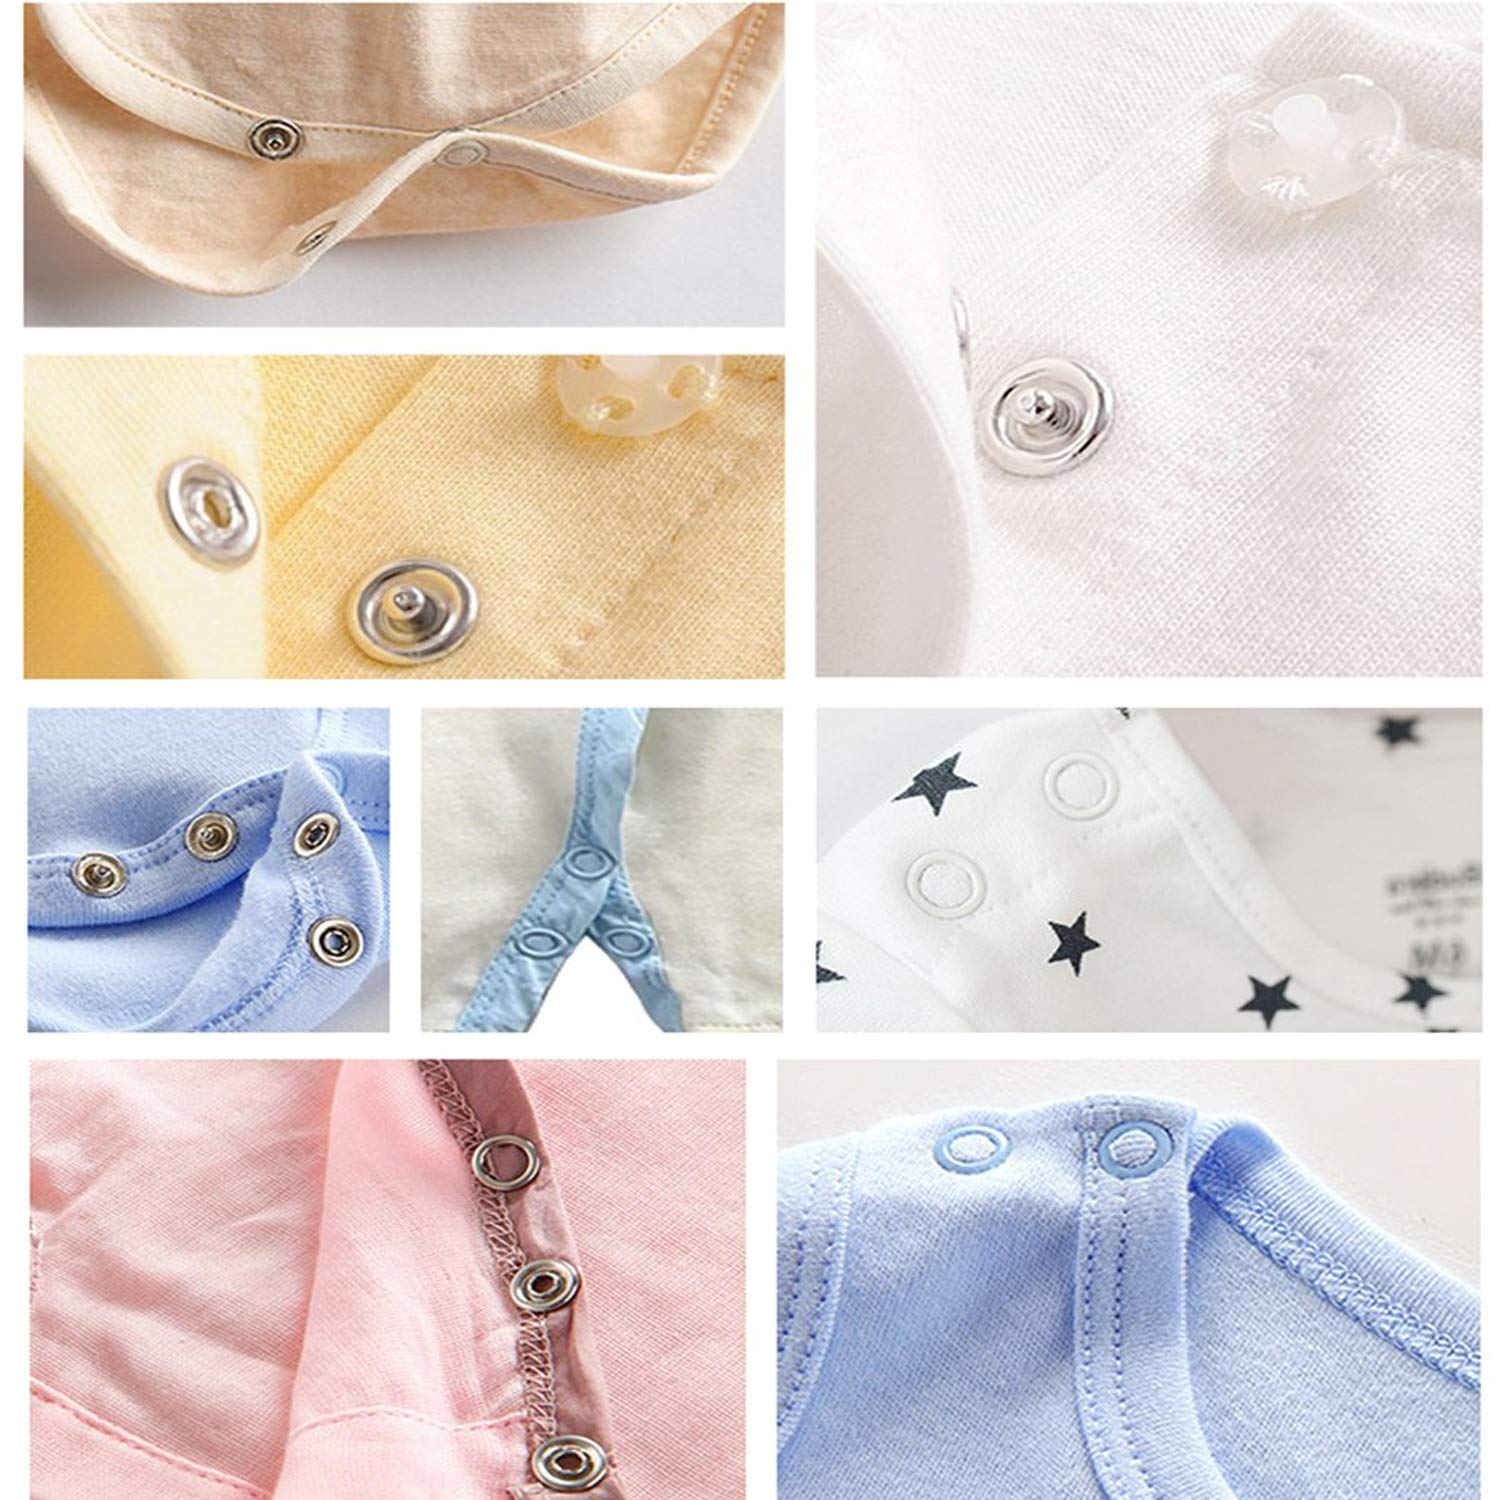 Leather Baby Bibs Custom Clothing Set of 100 Arts and Crafts Projects Weddecor 9.5mm Press Studs Silver Snap Poppers Brass Material Prong Ring Fasteners For Baby Clothes